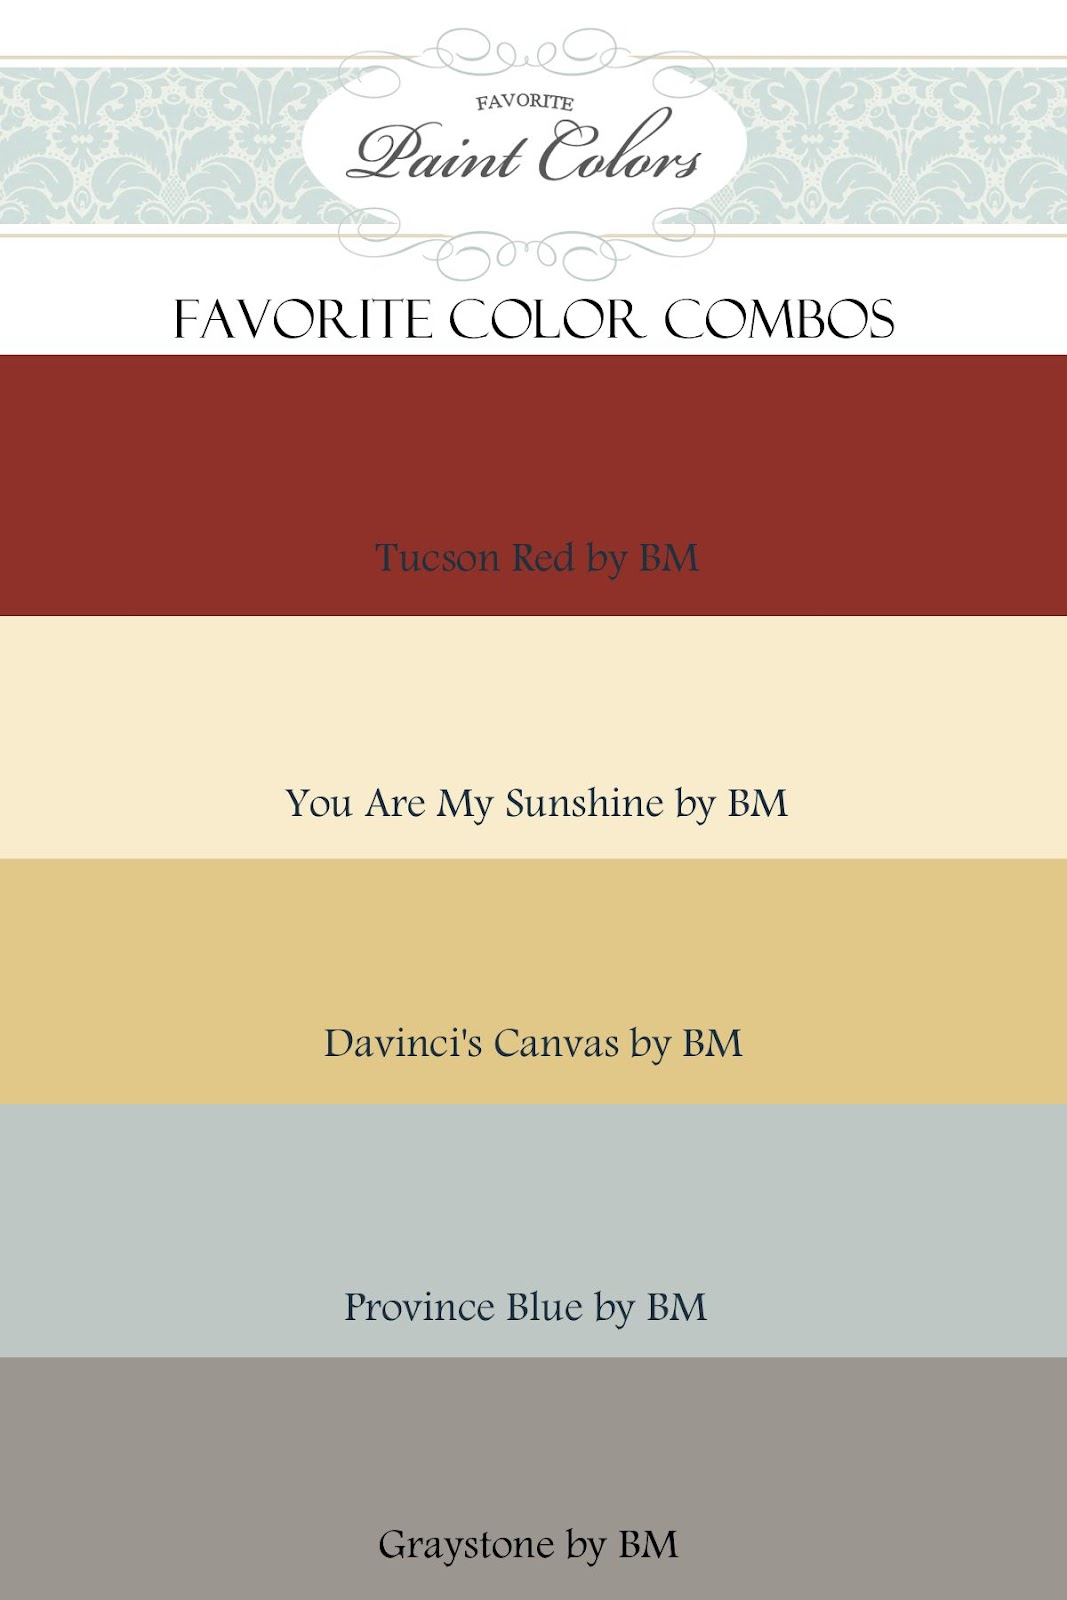 Color Combinations For Tucson Red Favorite Paint Colors Blog